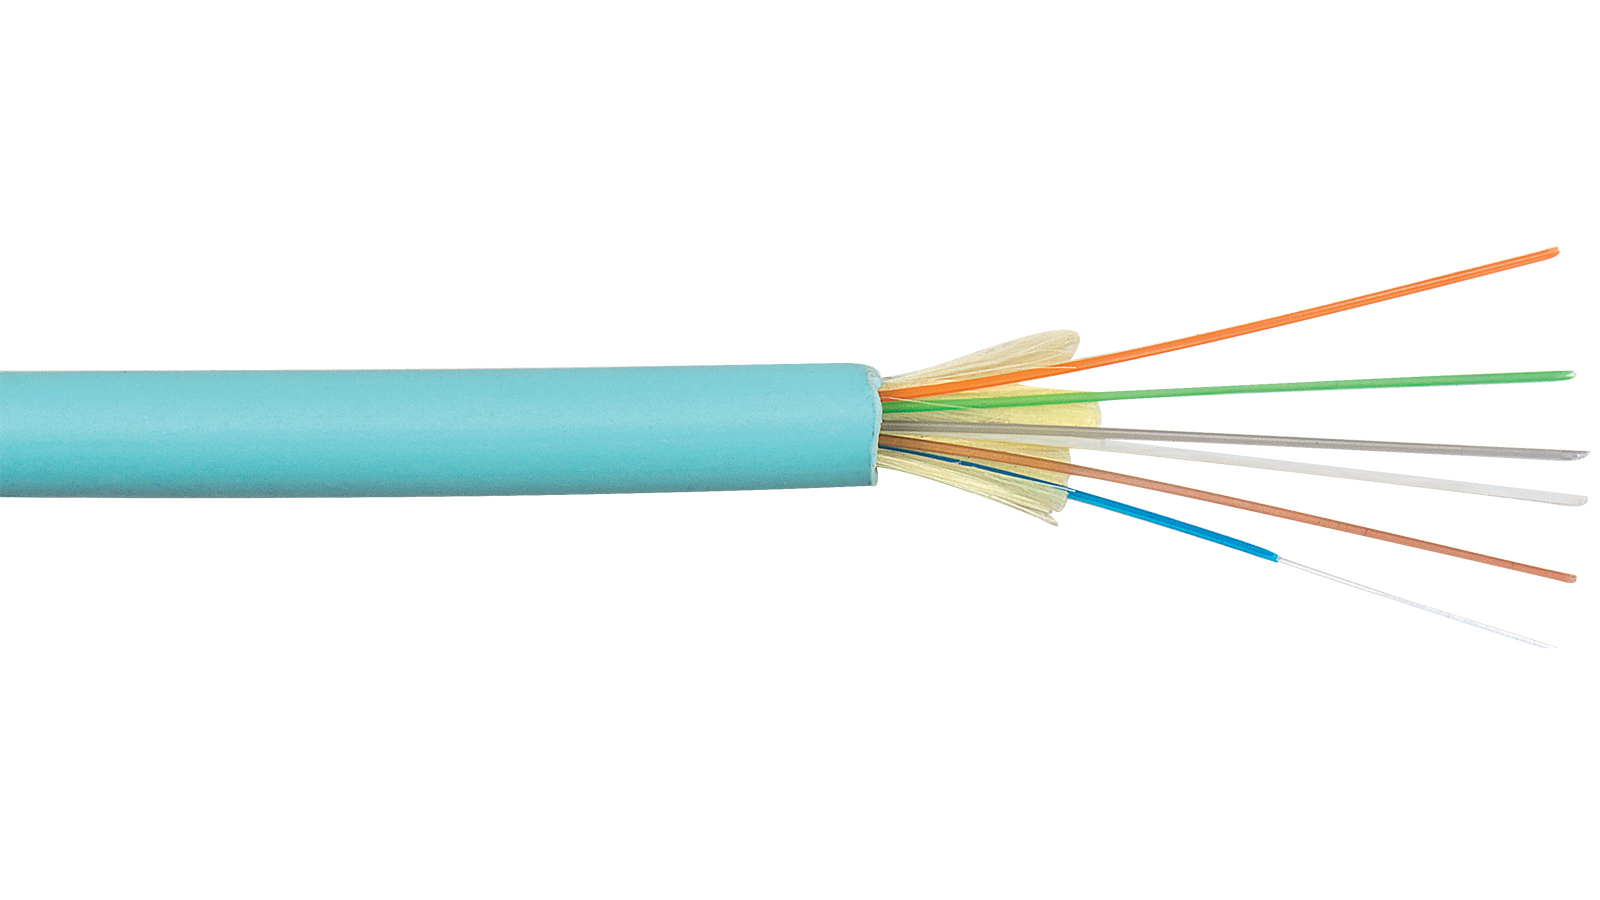 Optical Fiber Cable : Fiber patch cables archives optical networking